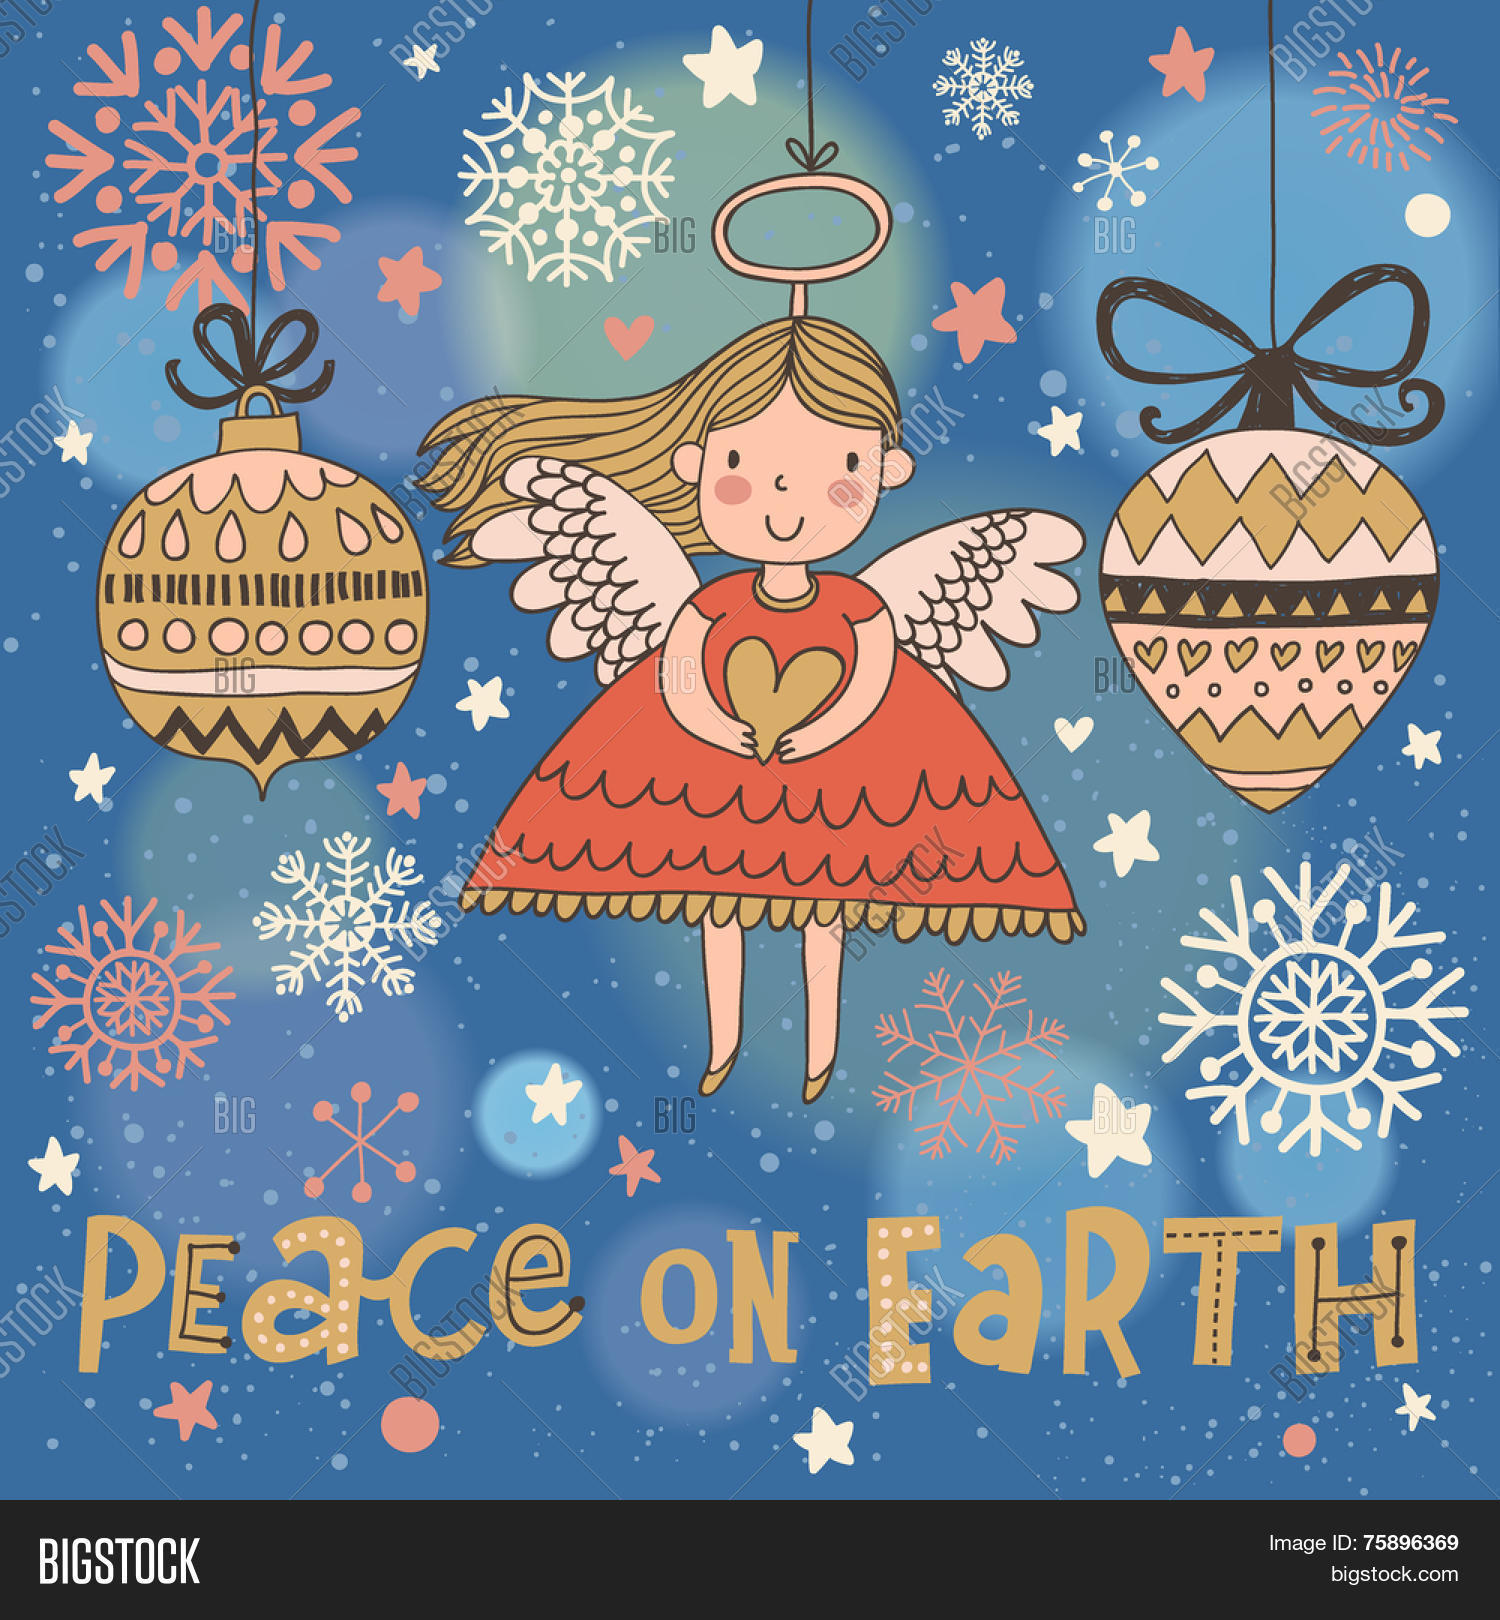 Peace On Earth Holiday Photo Cards Arts Arts